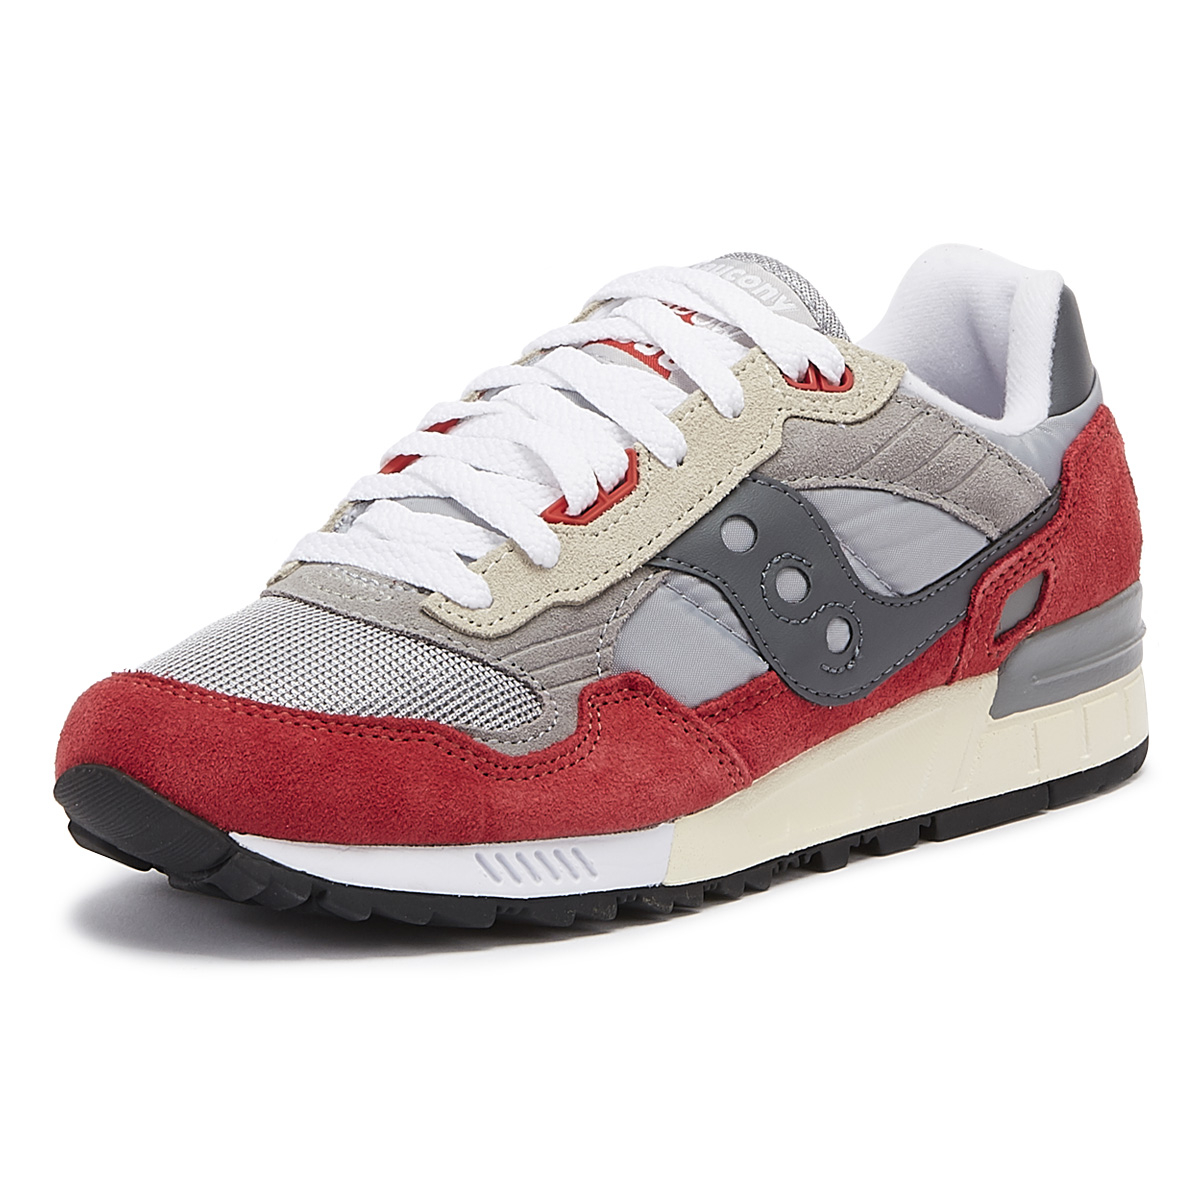 reputable site bea70 71aa7 Details about Saucony Shadow 5000 Vintage Grey / Red Trainers Sport Casual  Lace Up Shoes